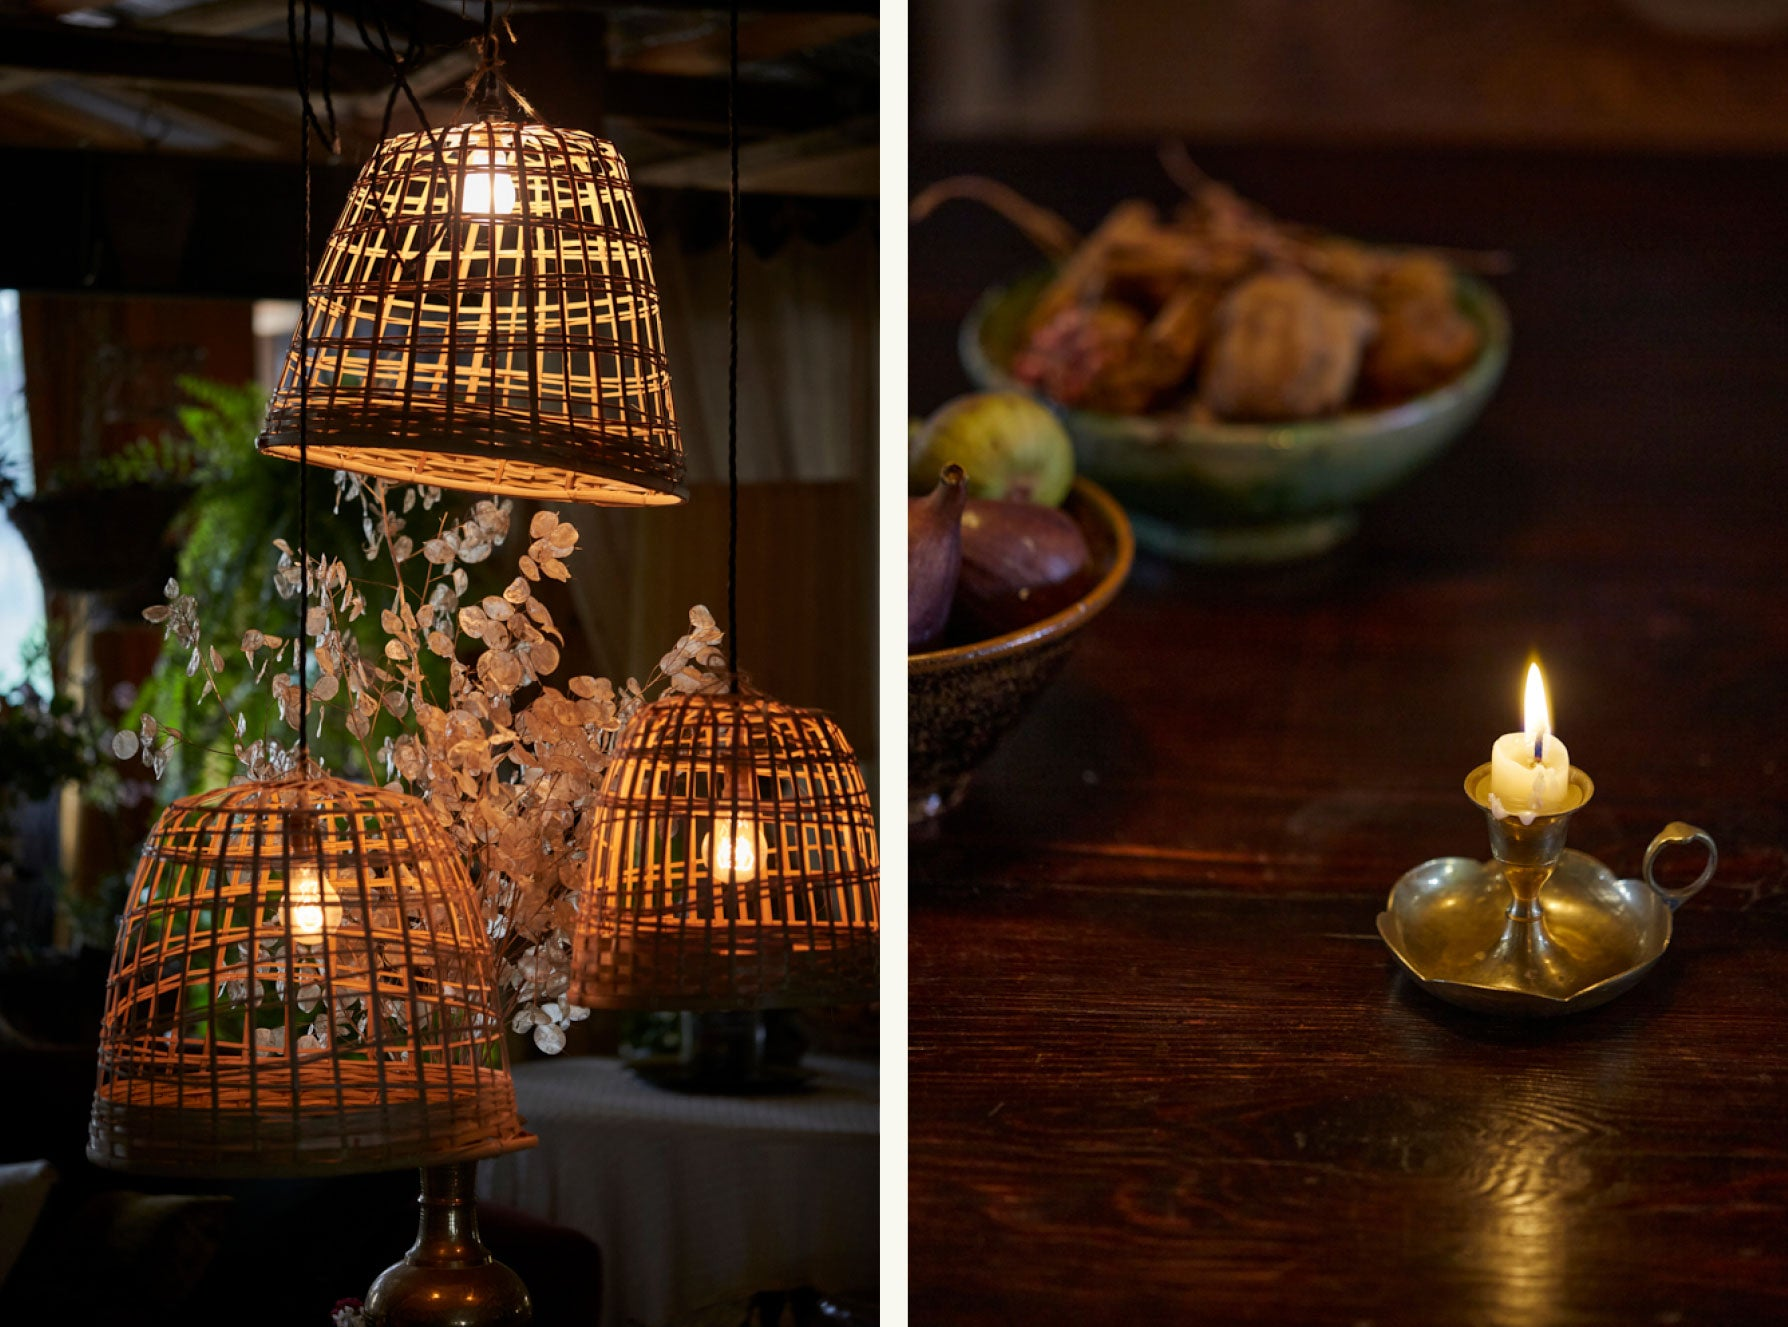 Cane lamp shades and candles in a vintage interior